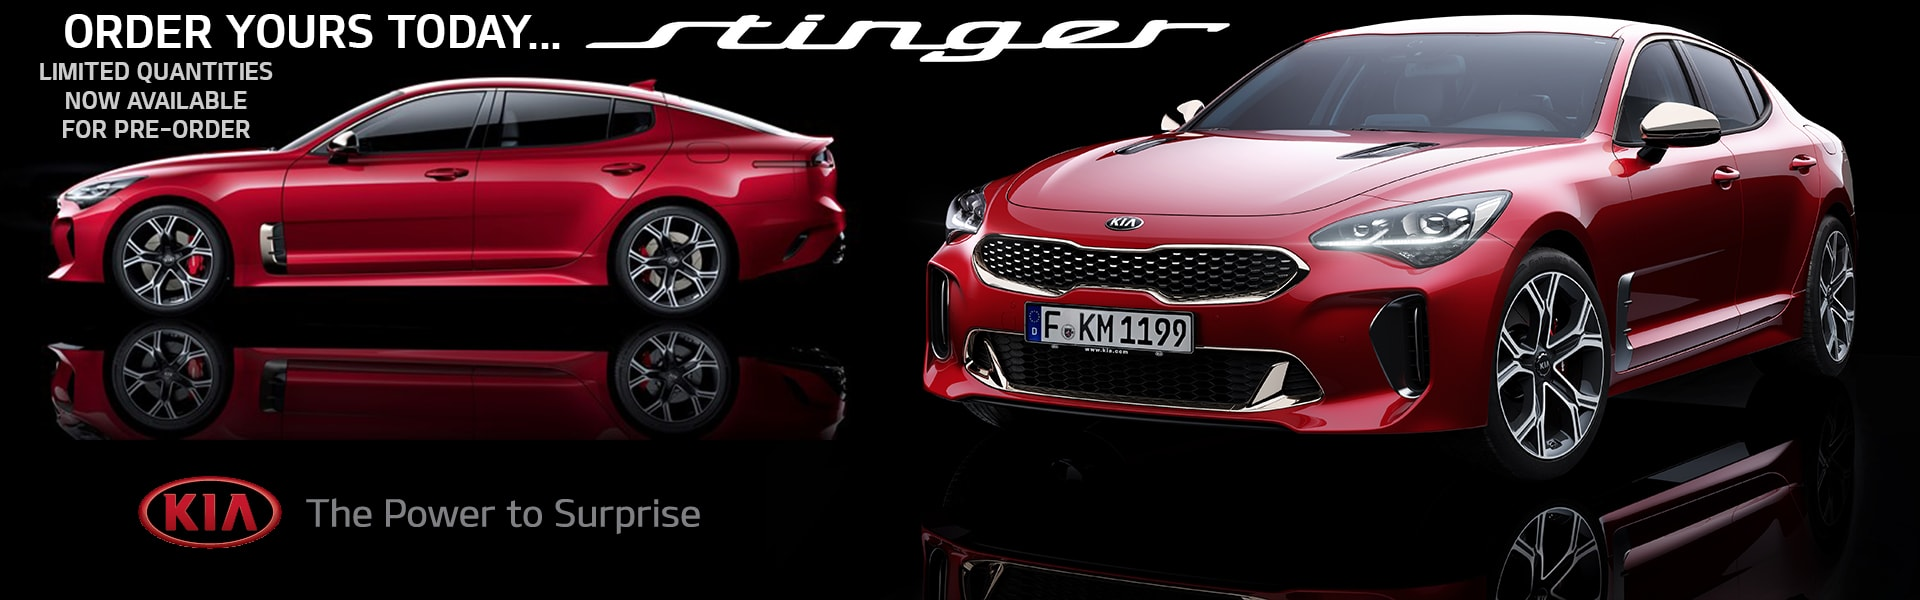 2018 Stinger Now Available For Pre-order